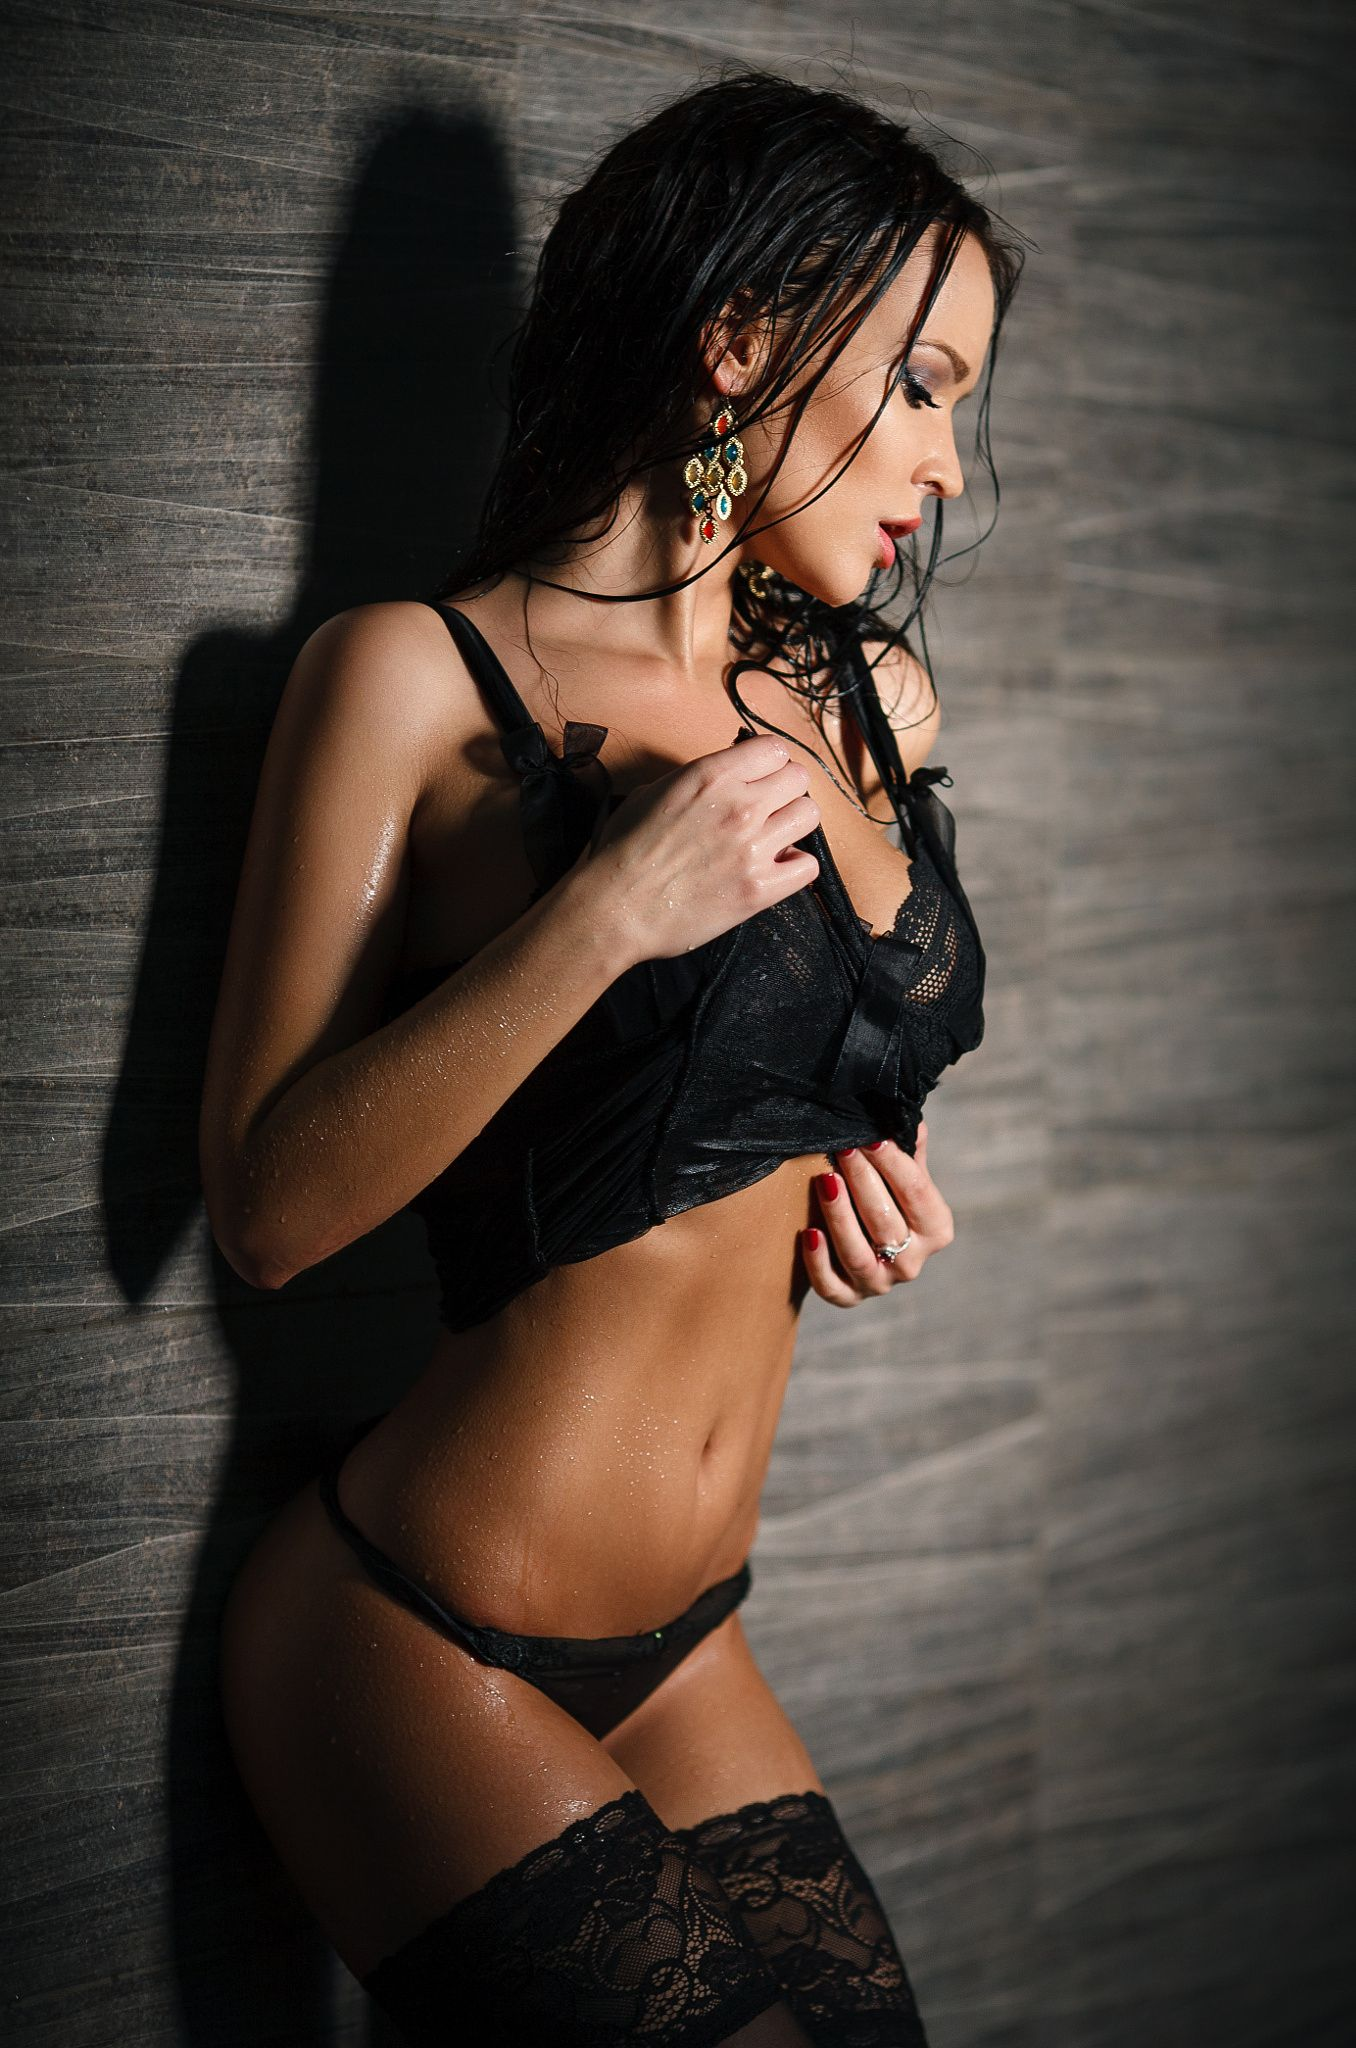 teacher ukraine kiev escort